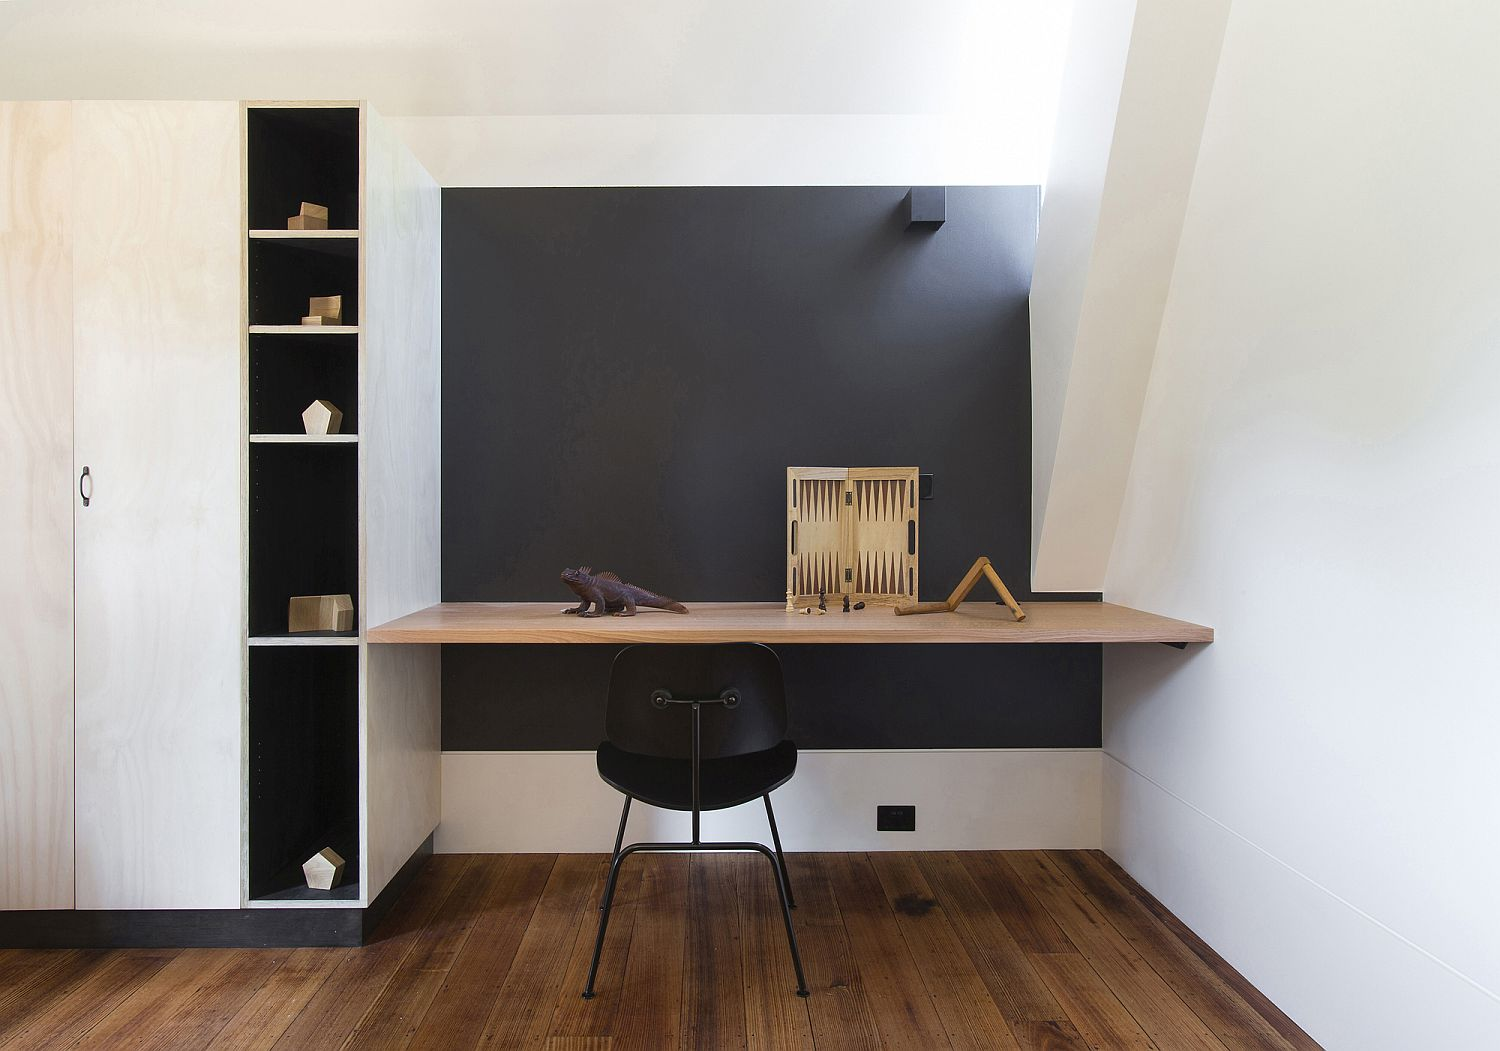 Small and space-savy home workstation with plenty of natural light